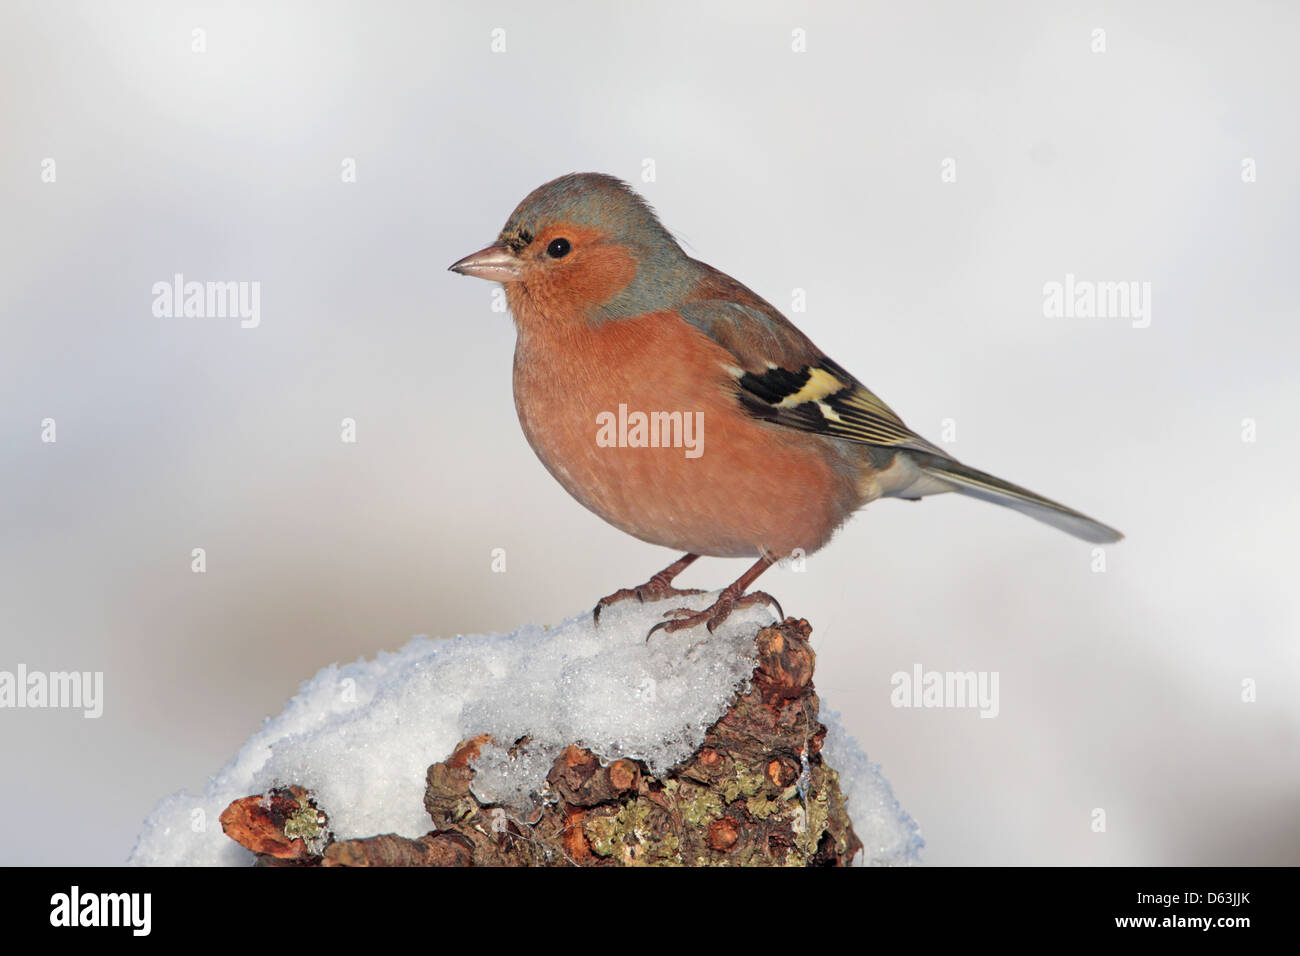 Male Common Chaffinch Fringilla coelebs perched in snow in England - Stock Image